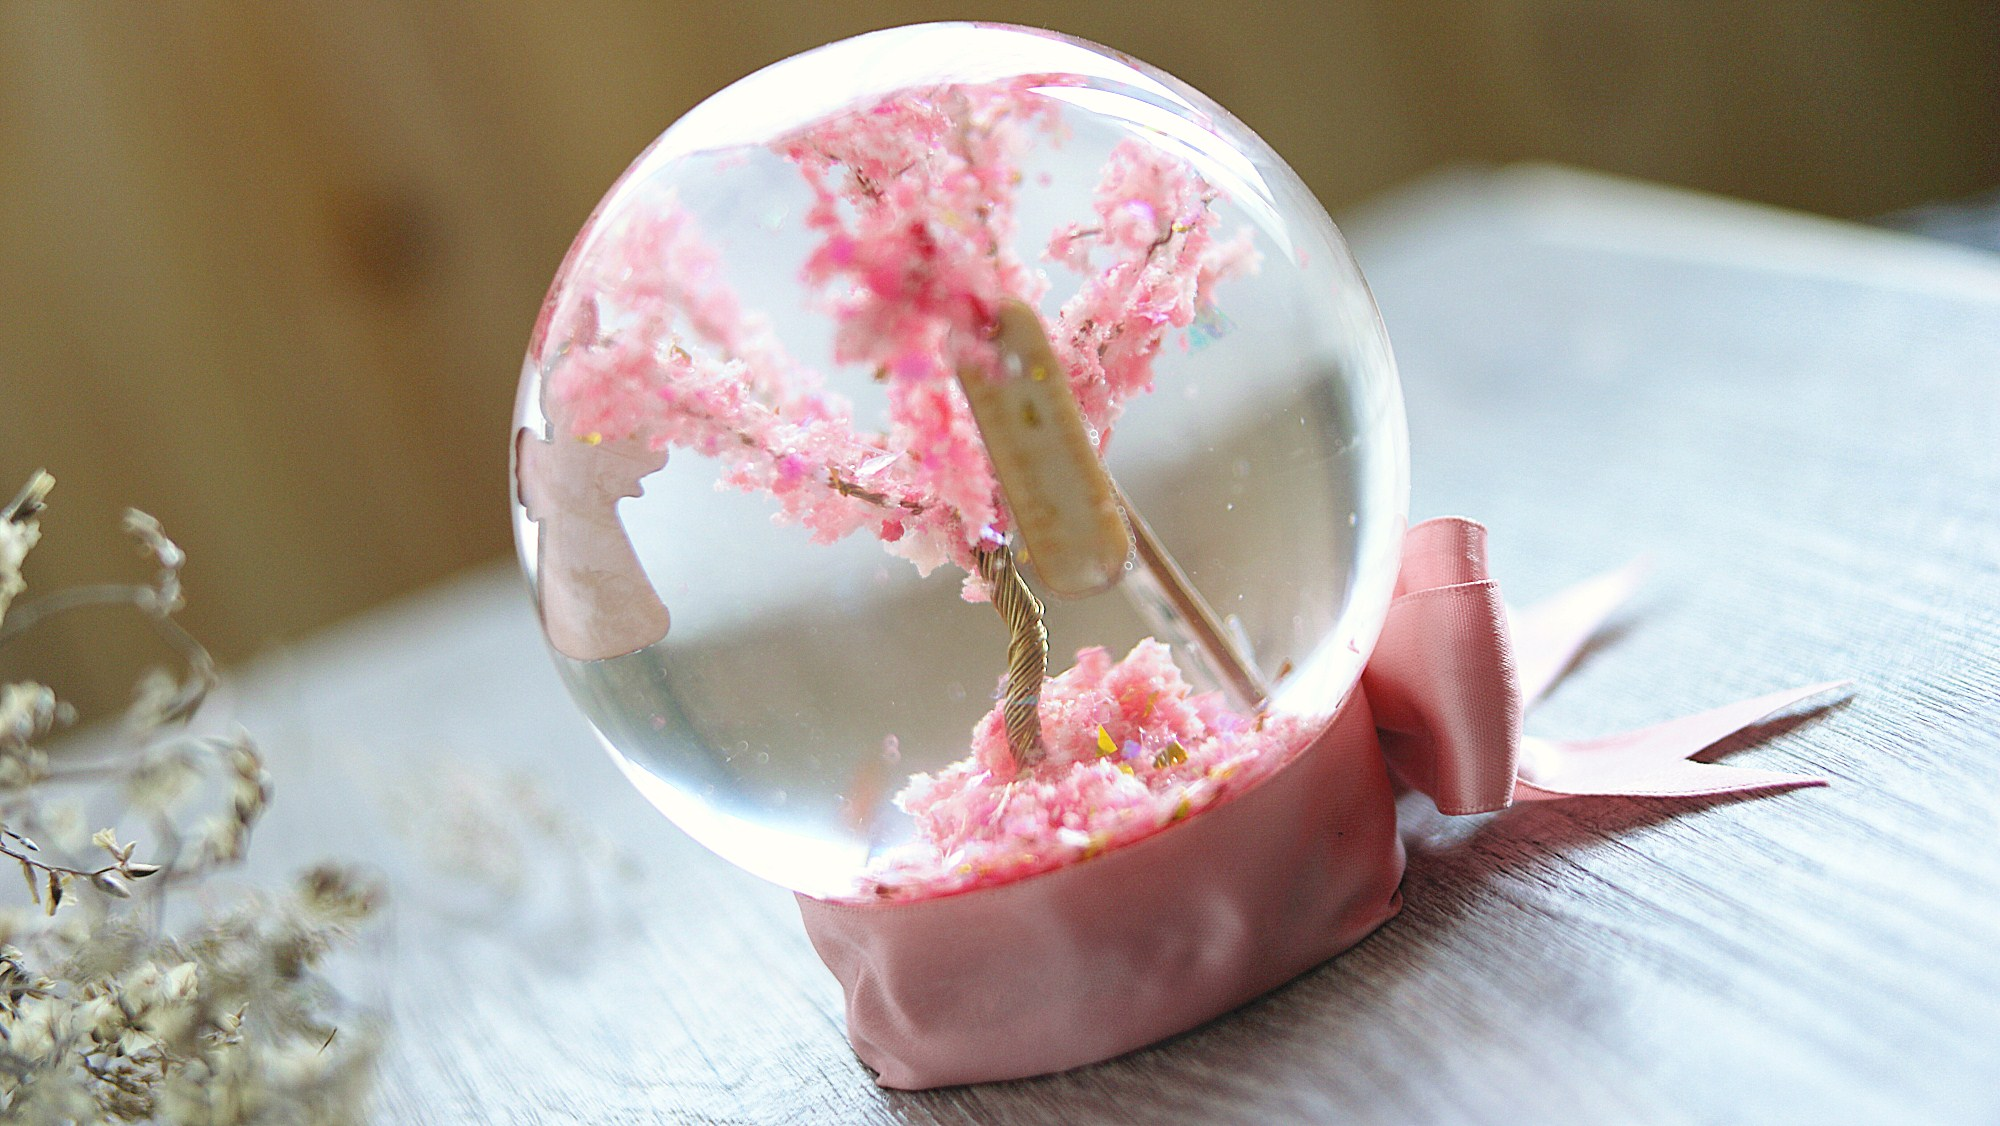 Sakura Wishing Tree Crystal Ball Workshop - K11 Art Infinity - K11